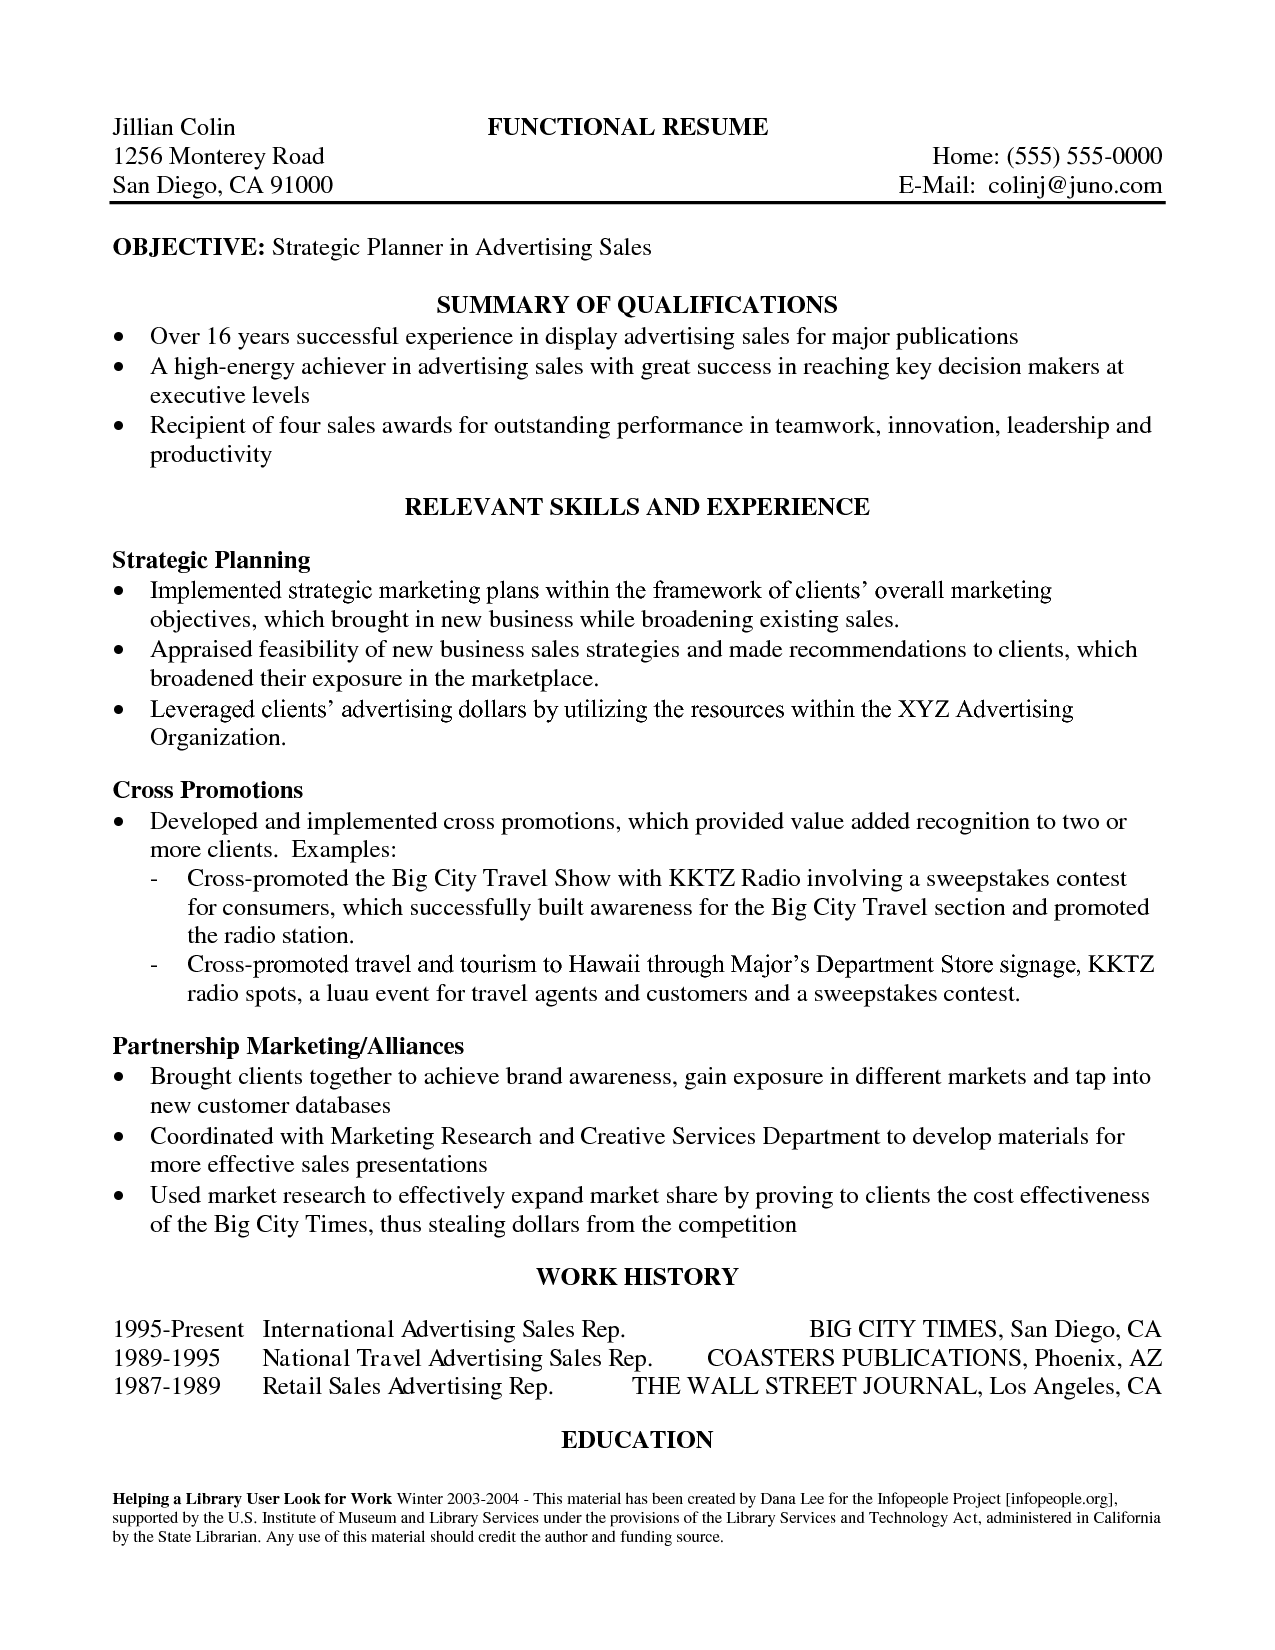 Qualifications For Resume Example Http Www Resumecareer Info